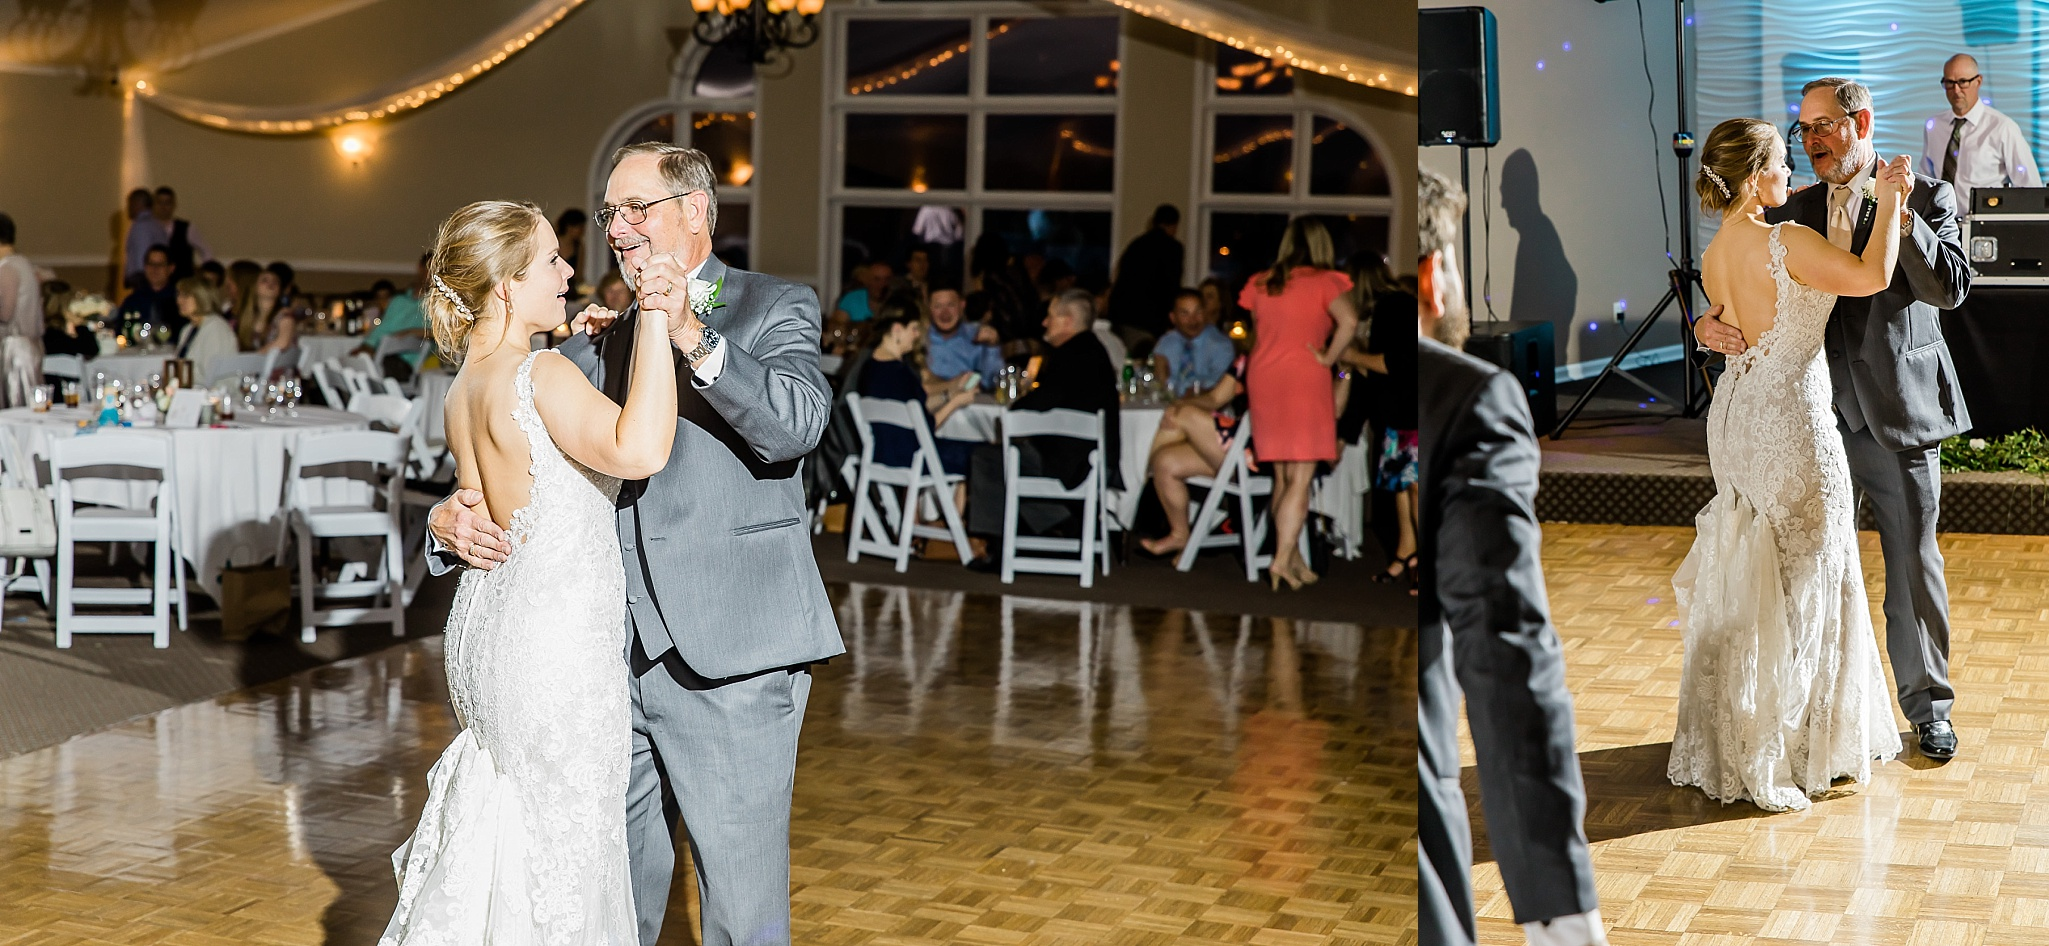 zionsville indiana rural wedding palomino ballroom new adventure productions_0057.jpg